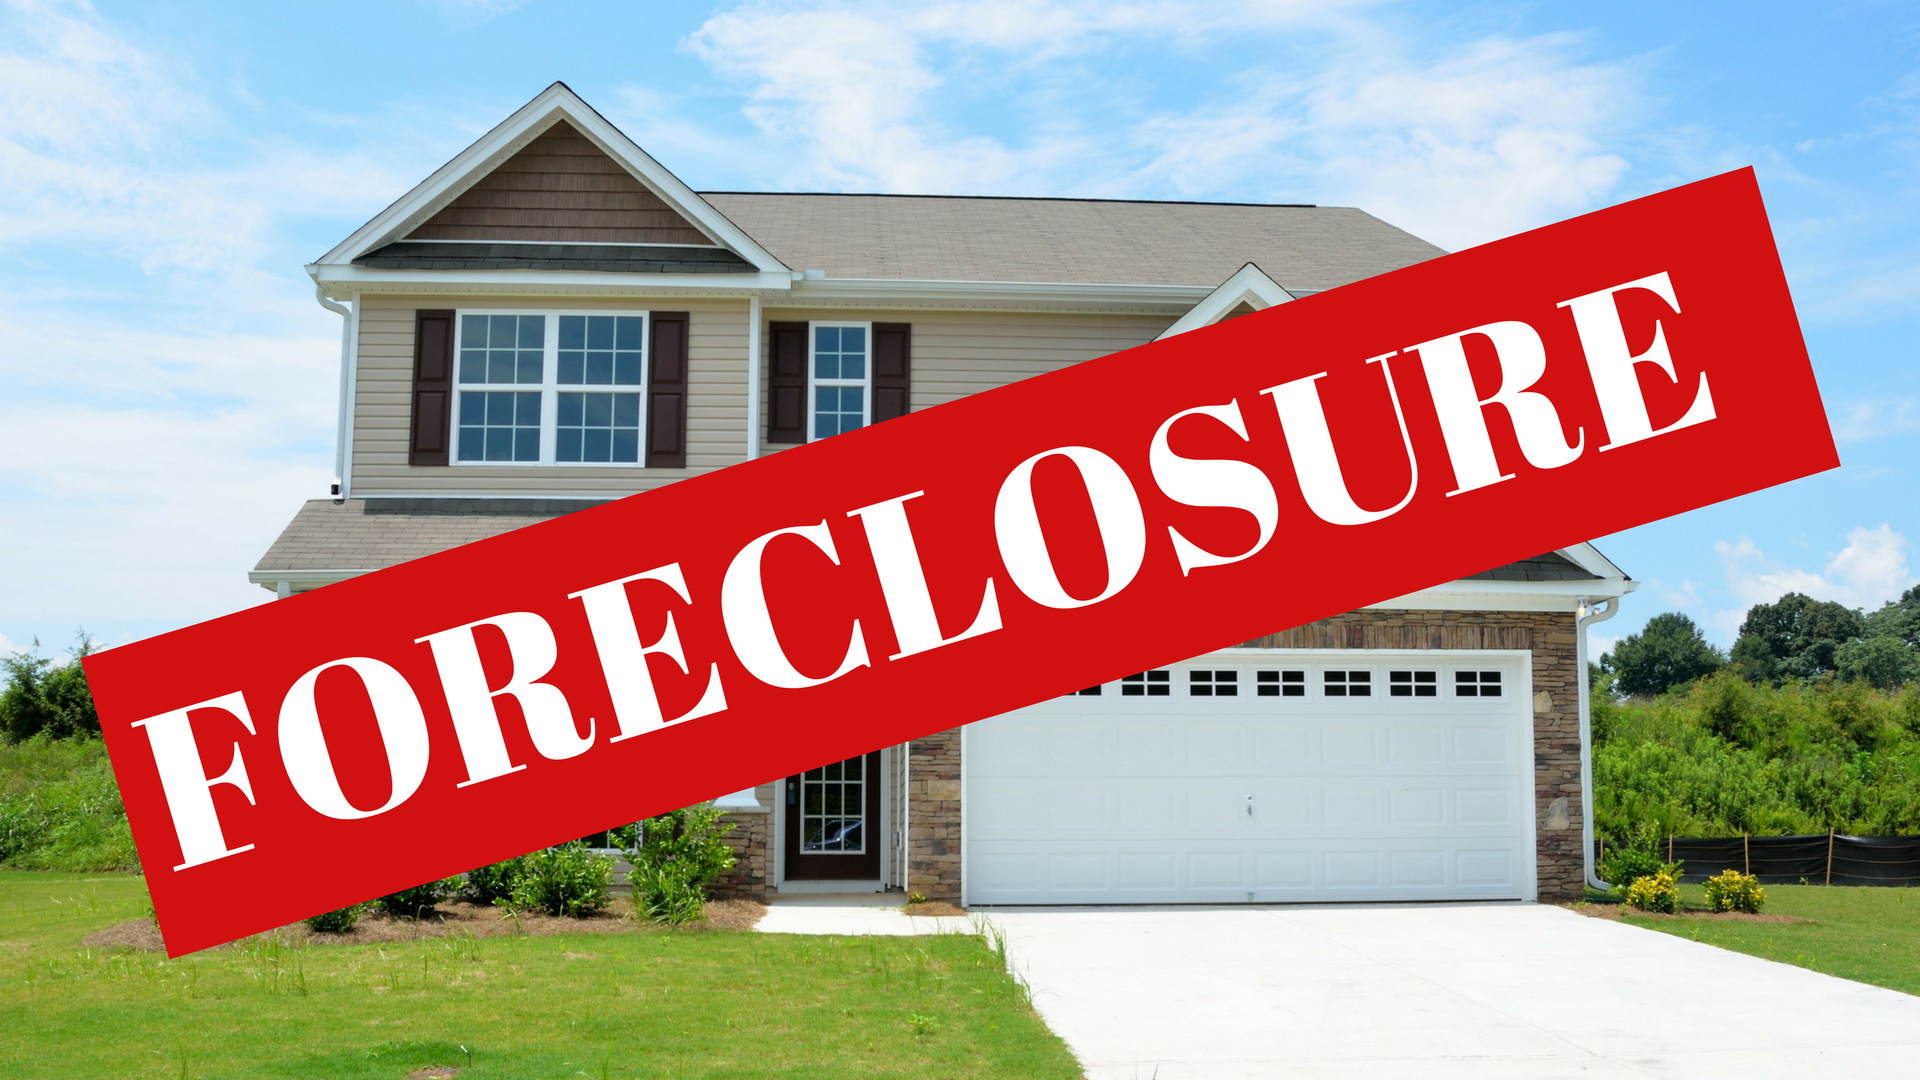 STOP FORECLOSURE POISE PROPERTIES